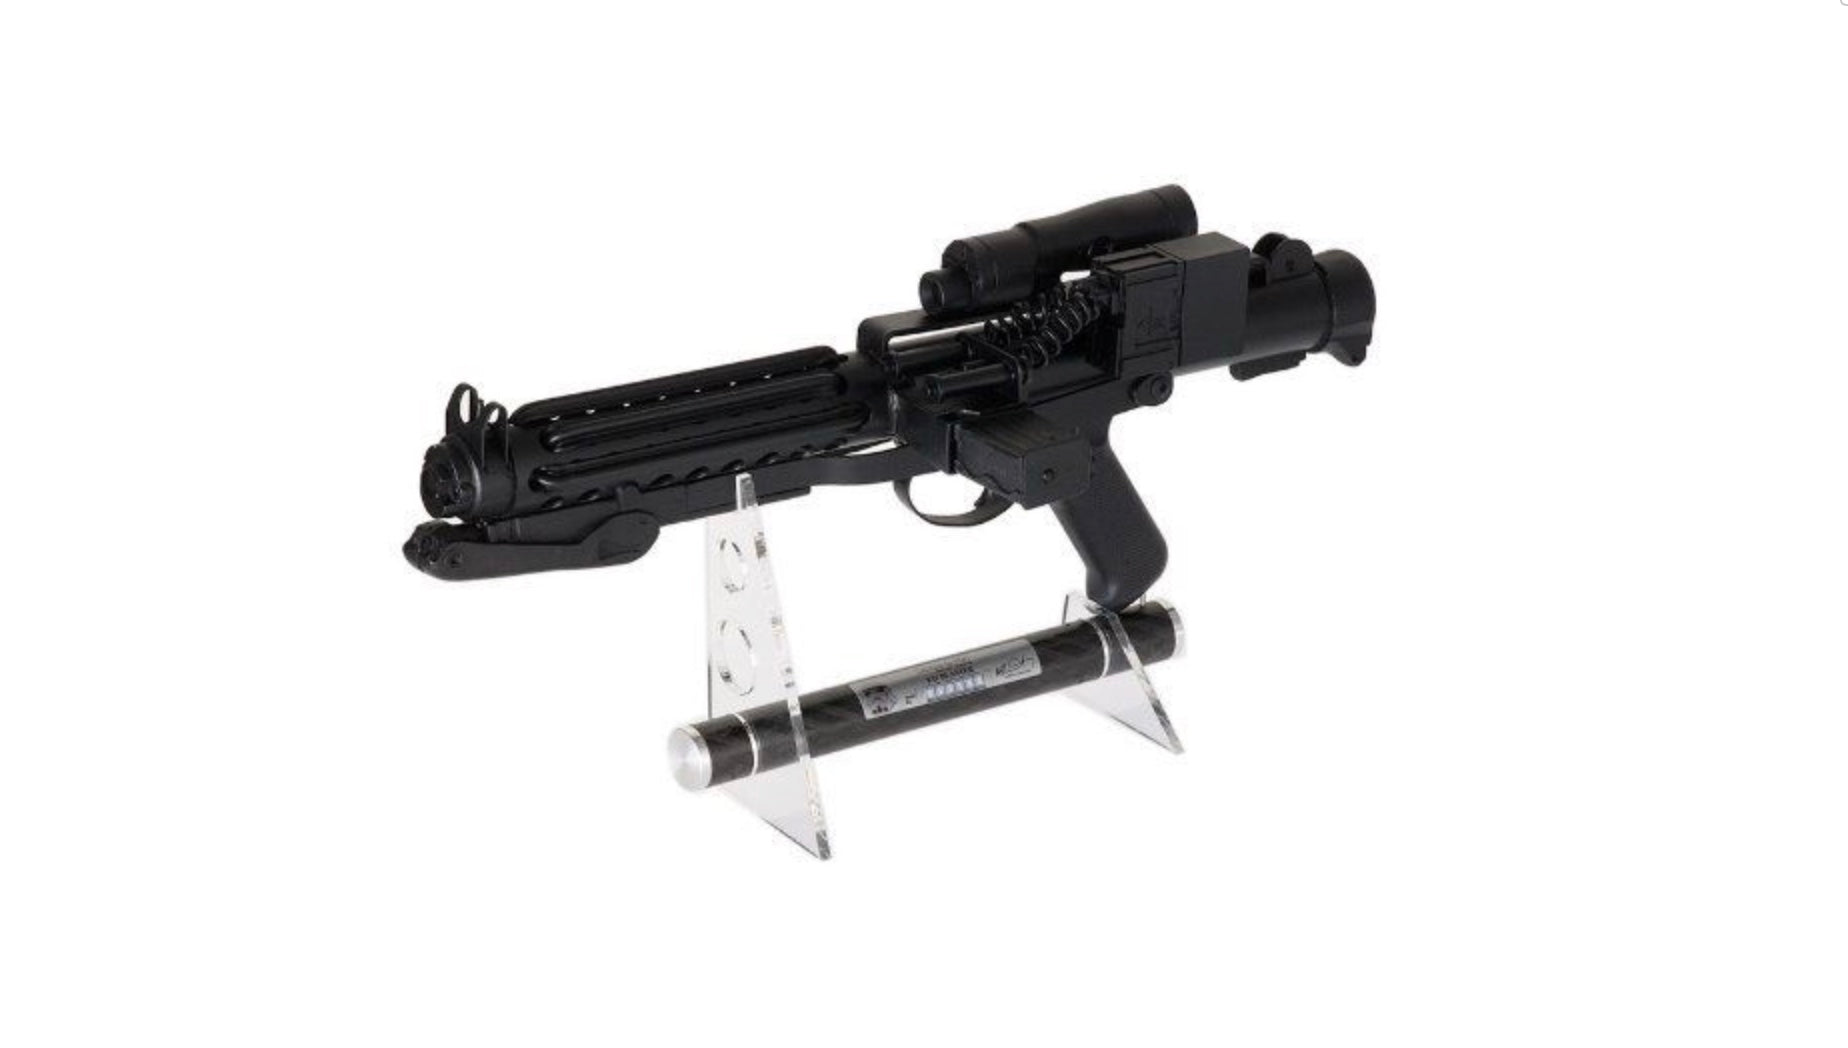 Star Wars - A Collectors Edition Replica E11 Blaster SOLD